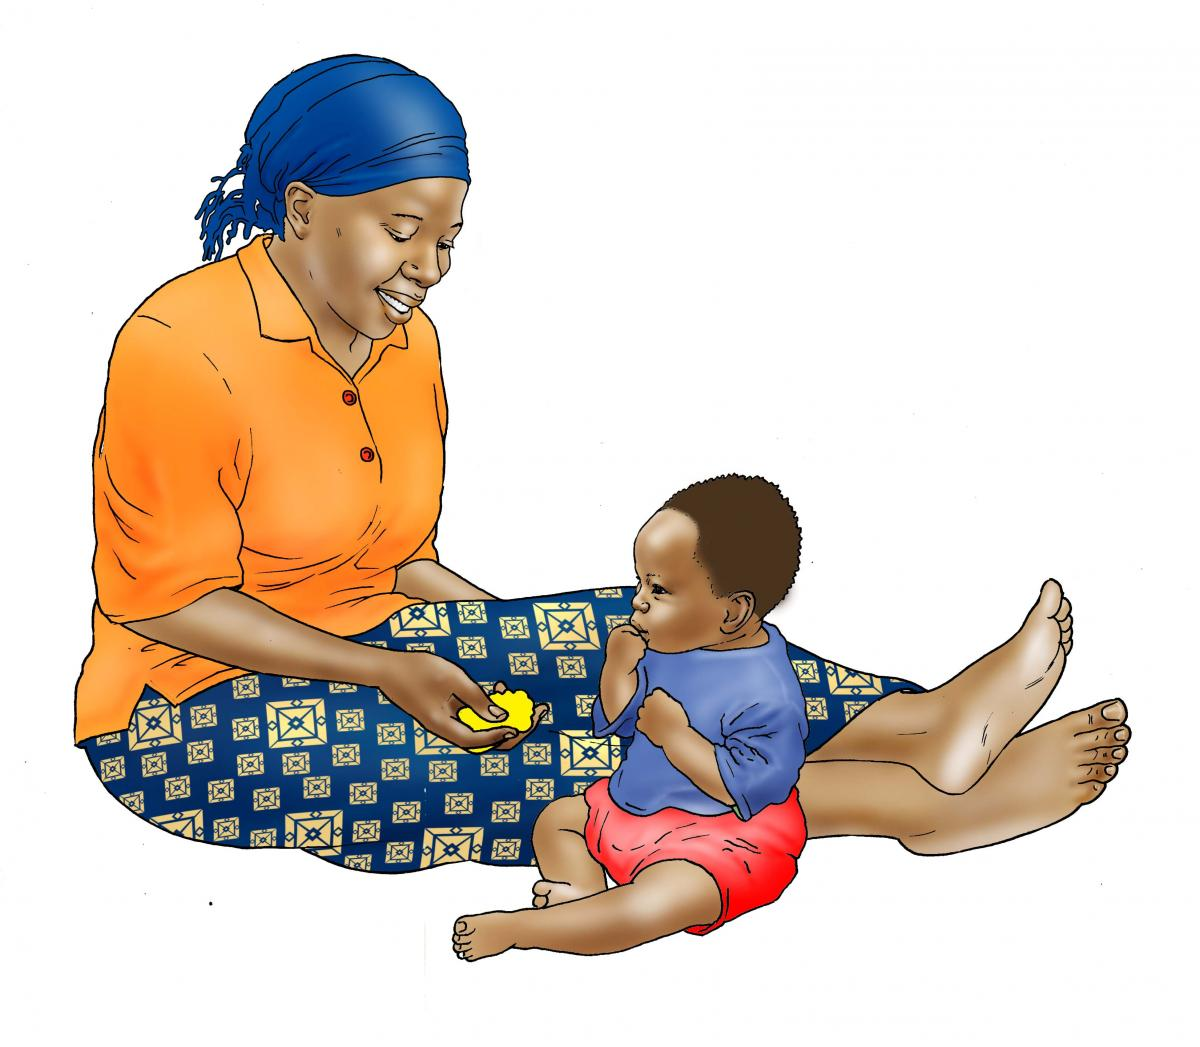 Complementary Feeding - Mother feeding child food 9-12 mo - 02 - Non-country specific